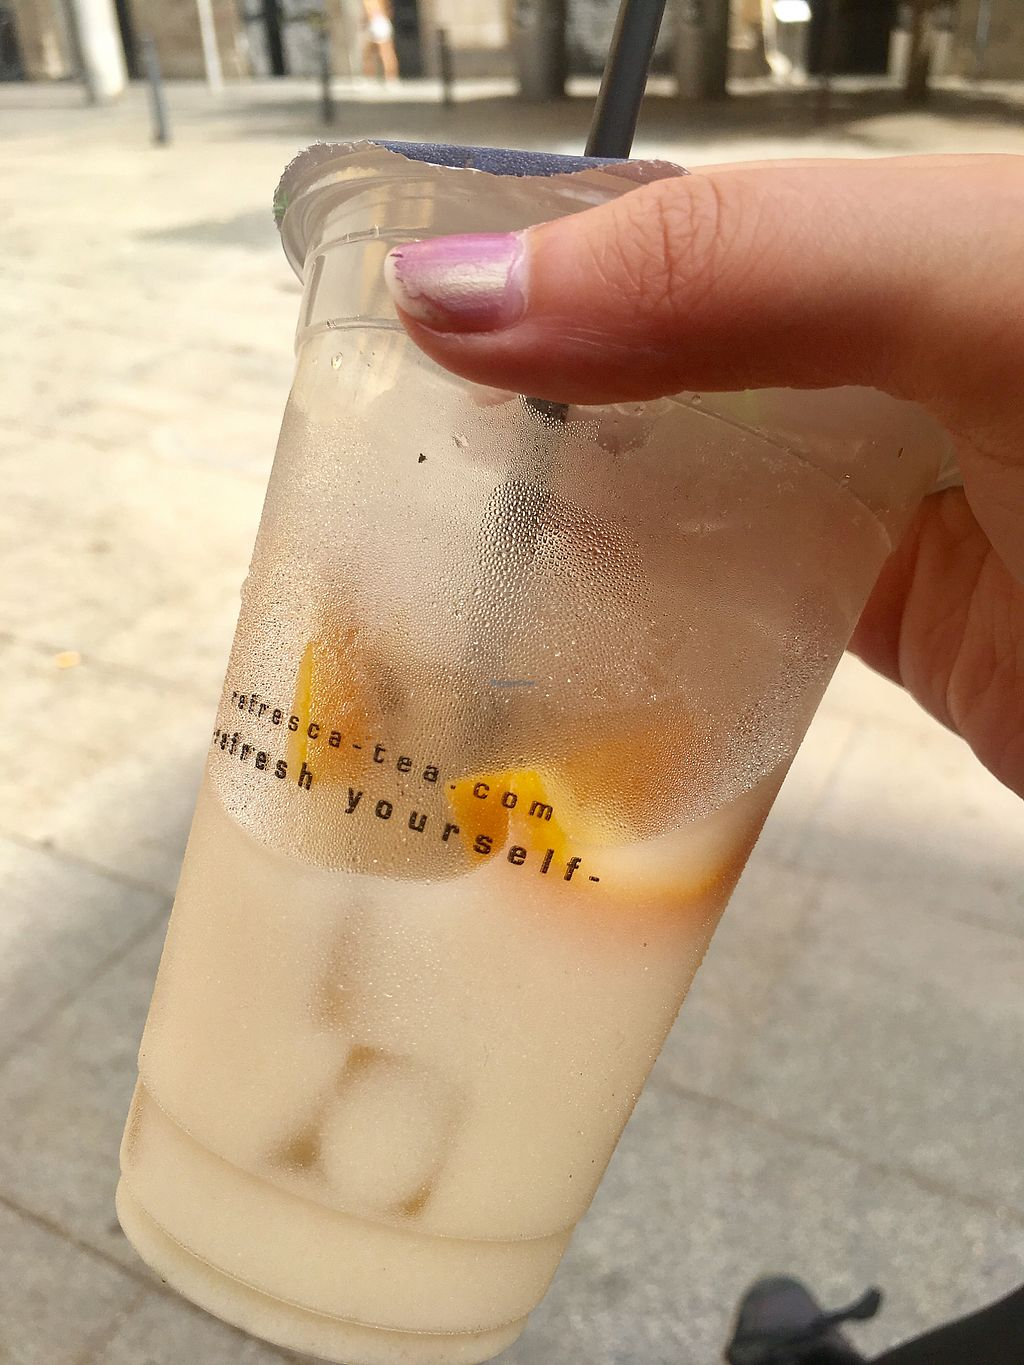 """Photo of Refresca Tea - El Born  by <a href=""""/members/profile/megj"""">megj</a> <br/>Sweet Fruit Chai with soy milk <br/> July 19, 2017  - <a href='/contact/abuse/image/41948/282083'>Report</a>"""